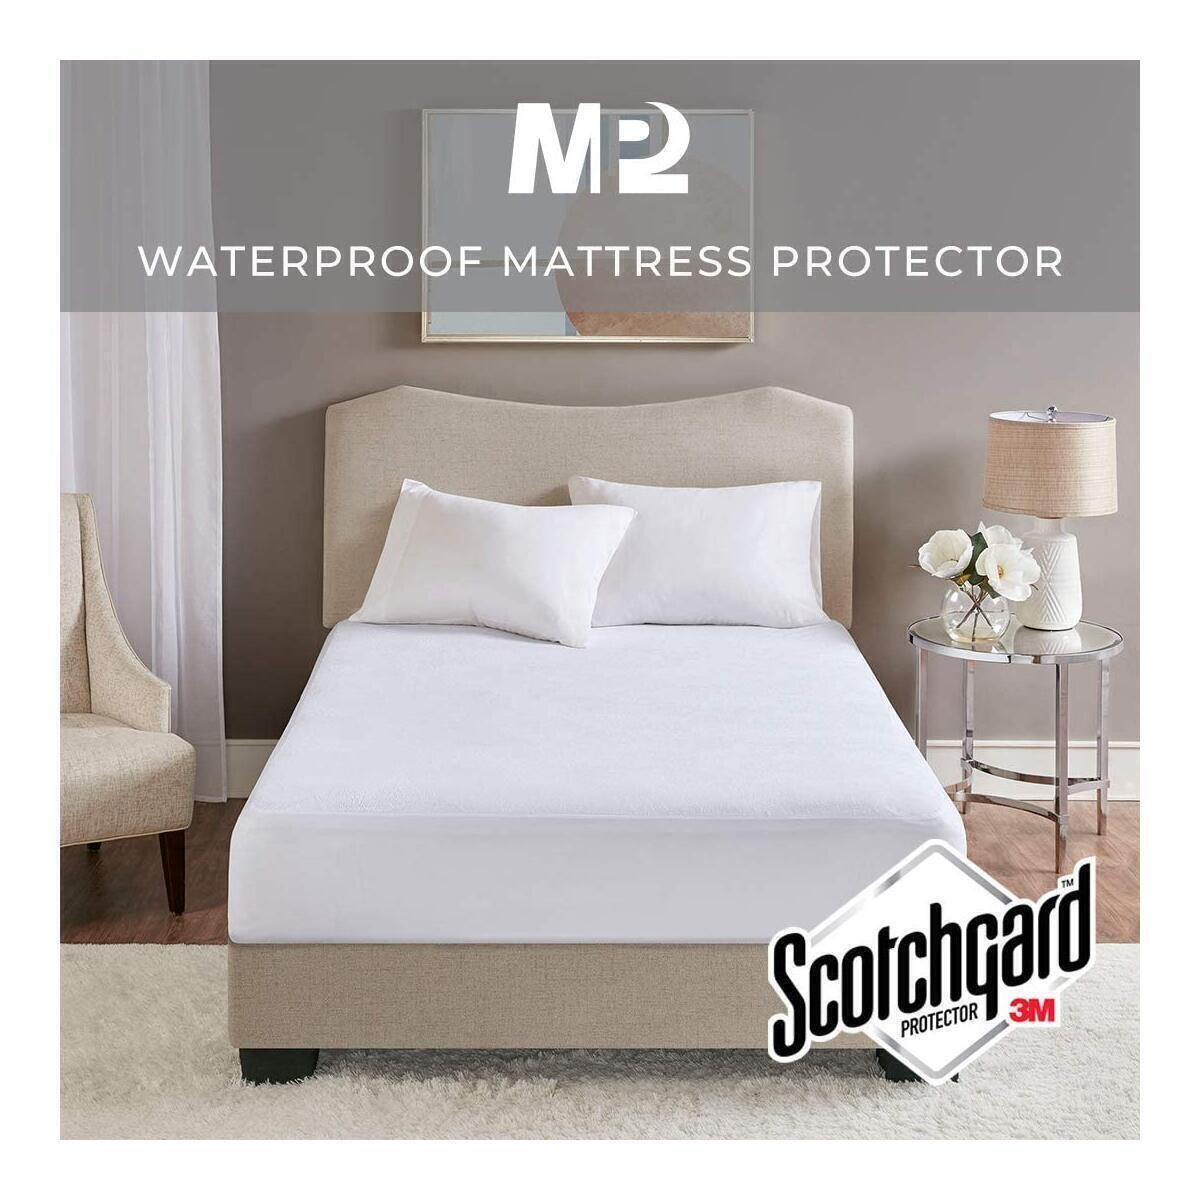 Waterproof Mattress Cover for Queen Size Bed, Breathable Protector Cooling Cotton Terry Deep Pocket - Fits 4